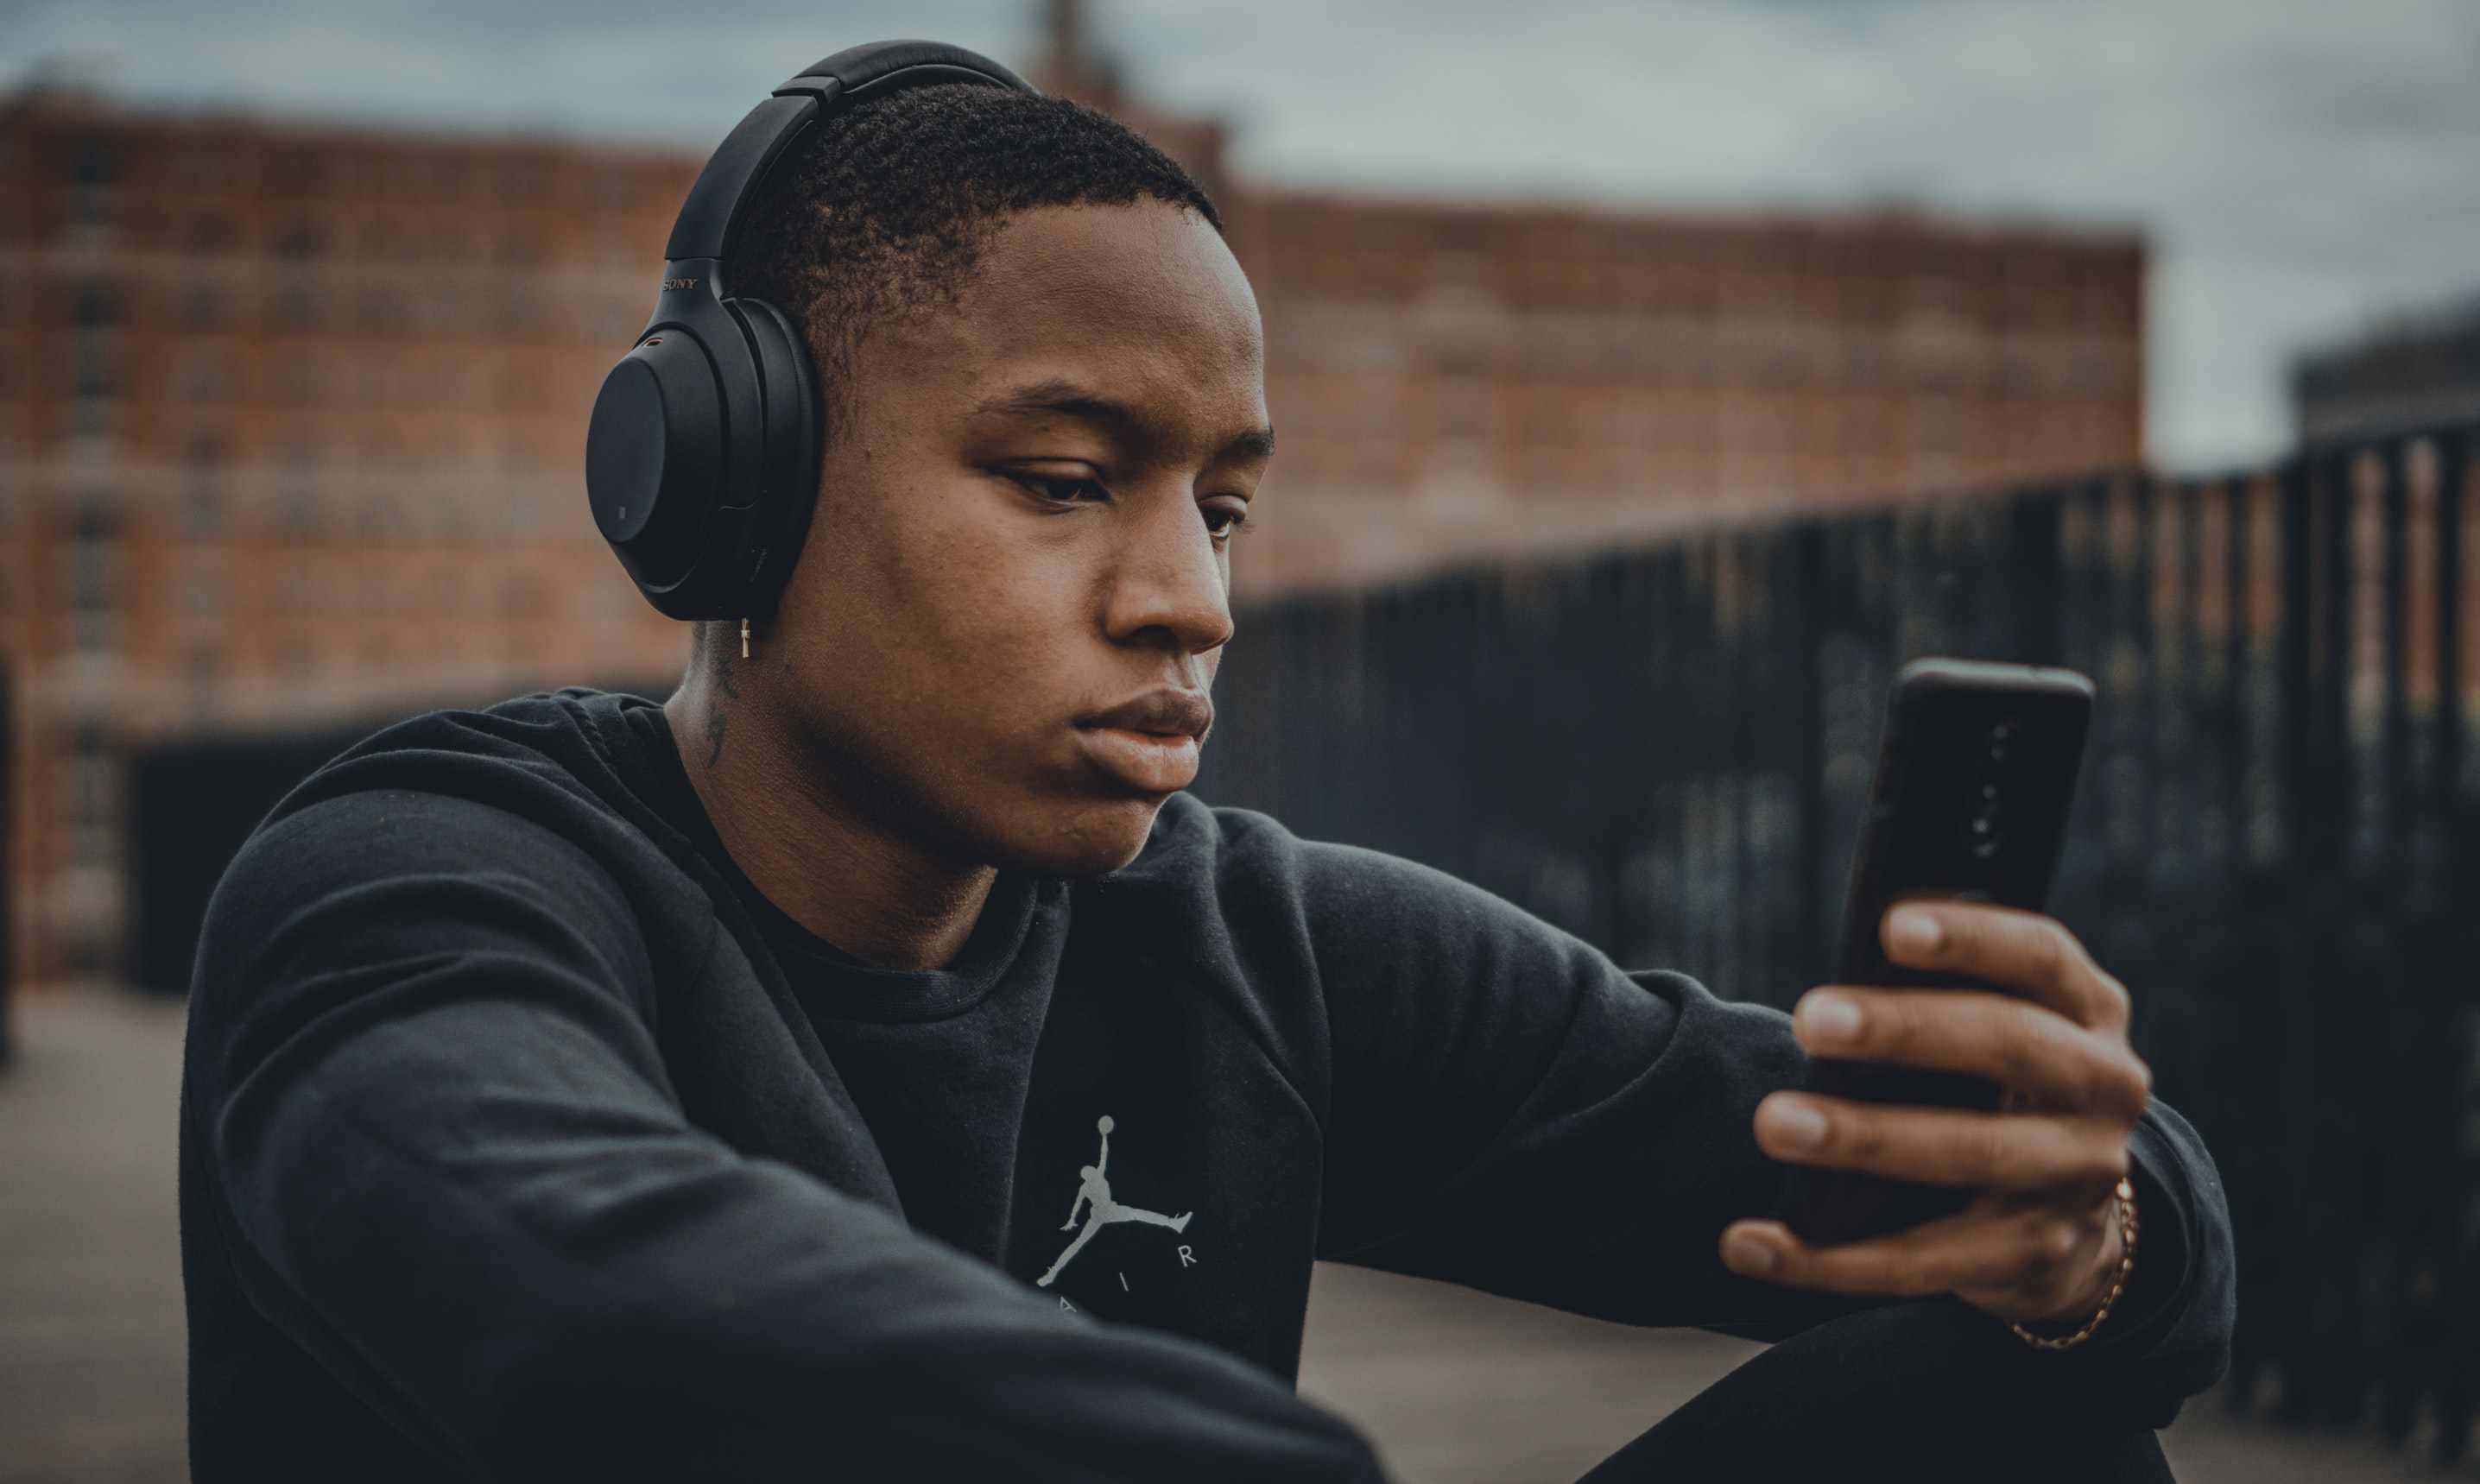 man wearing black nike sweater while wearing headphones and listening to their phone